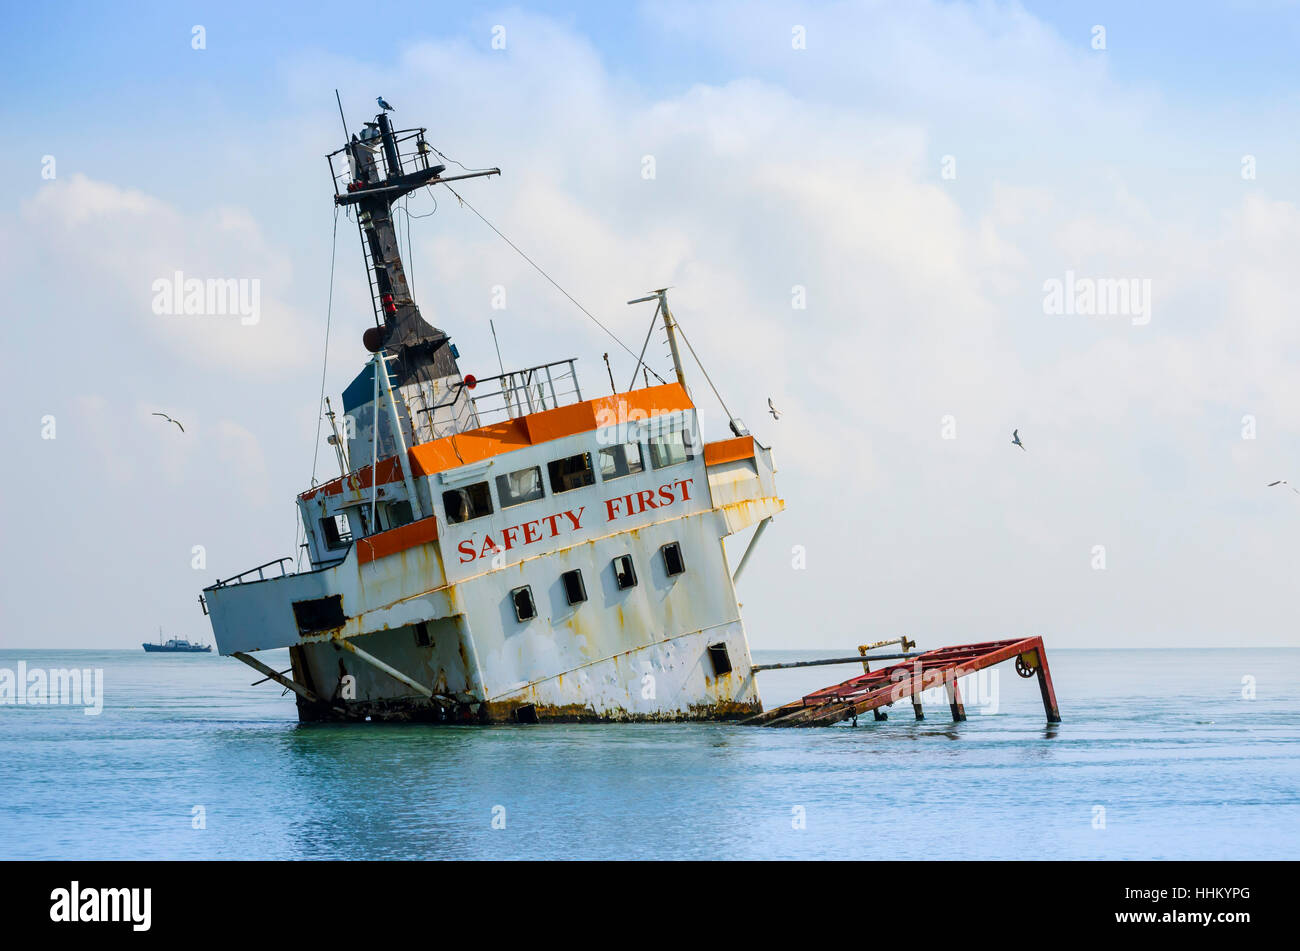 Shipwreck Sinking Cargo Ship In The Middle Of The Sea